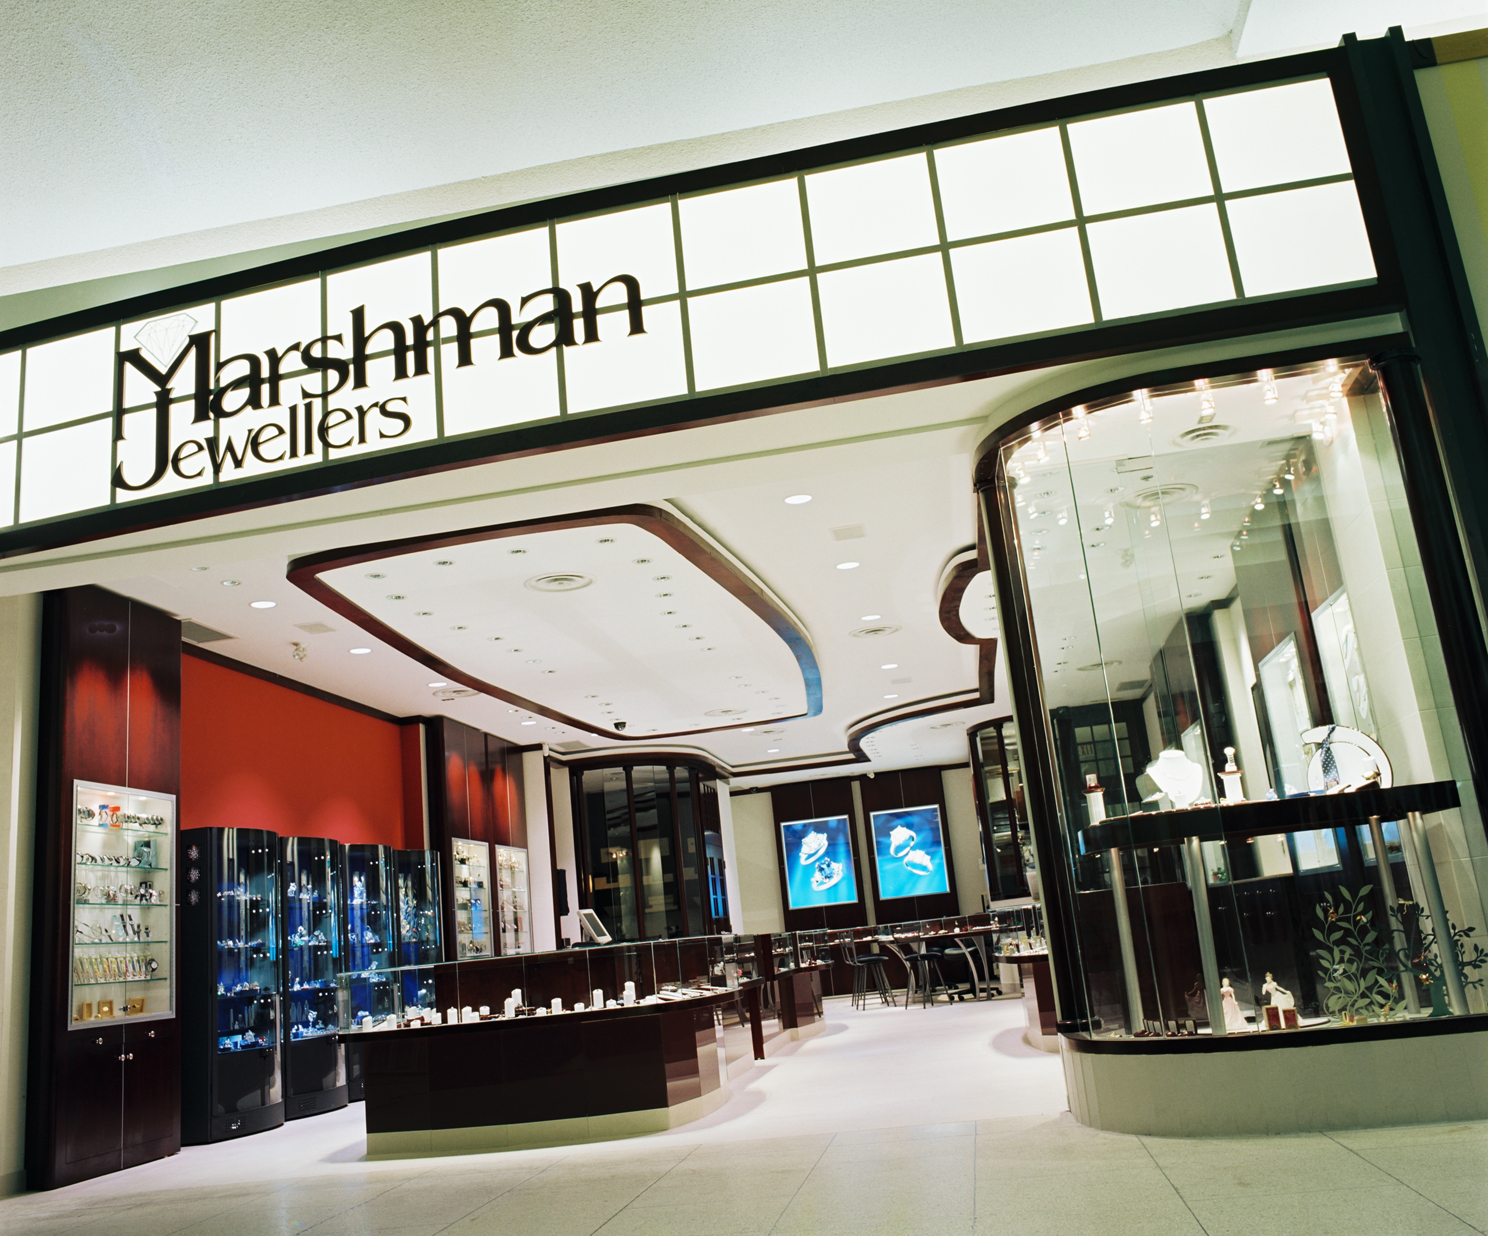 Marshman Jewellers, Jewellery Store, Custom Showcase, Lighting Design, Storefron